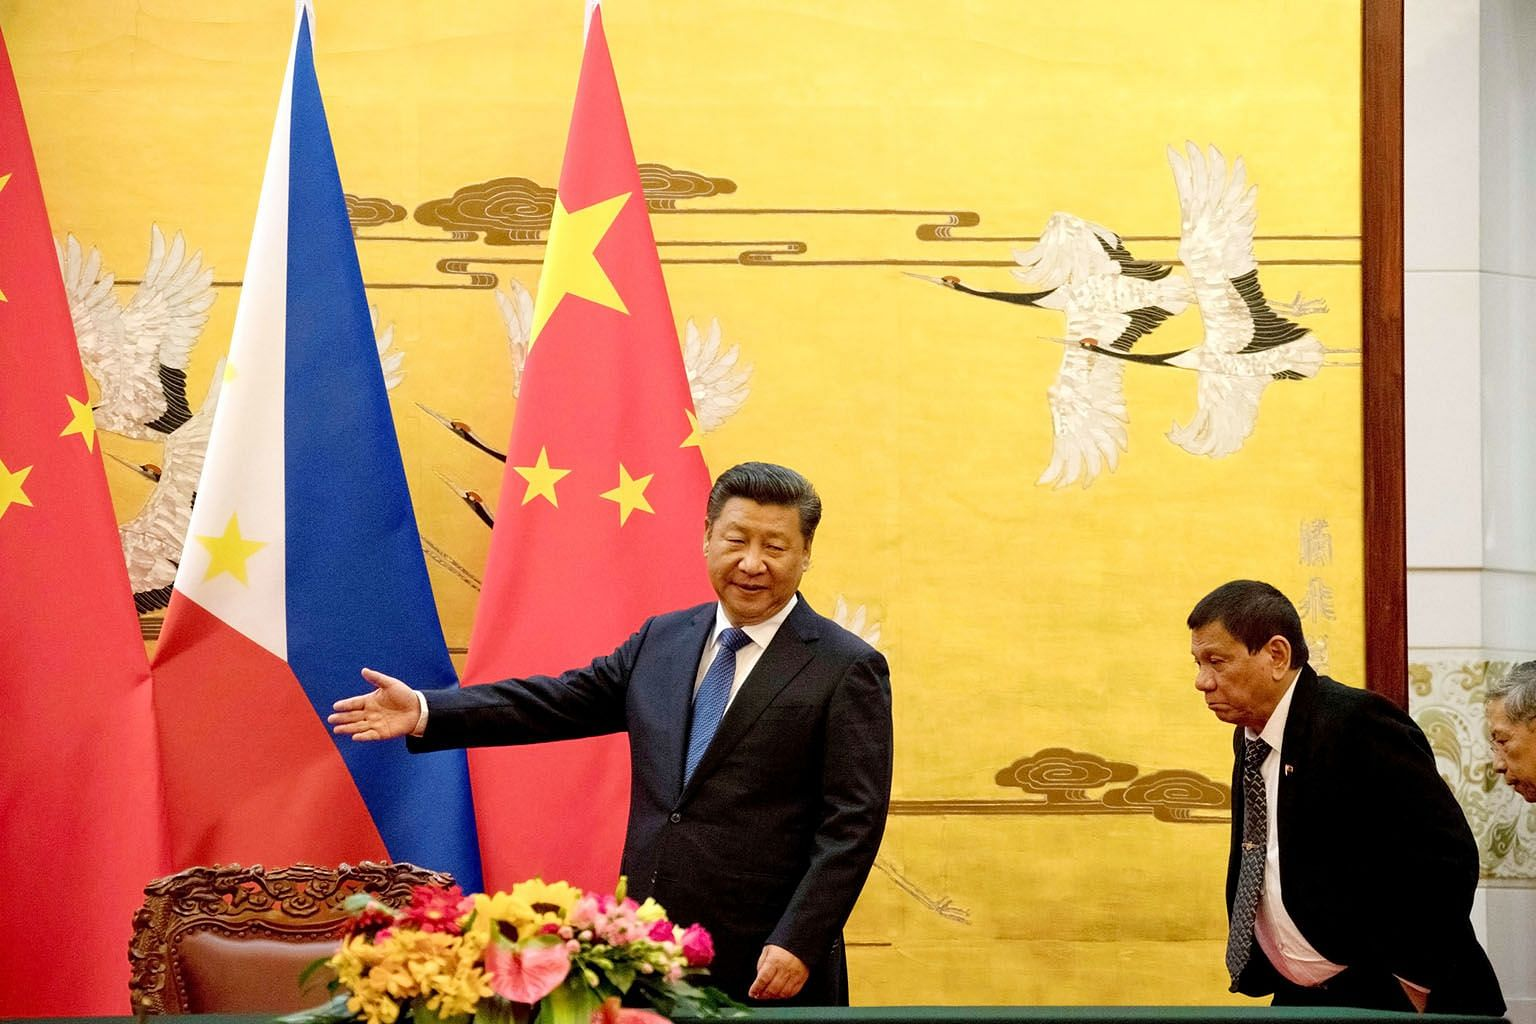 Chinese President Xi Jinping showing Philippine President Rodrigo Duterte the way at a signing ceremony in Beijing in October last year. President Duterte's rapprochement with China is faltering: Chinese capital has not poured into the Philippines, n